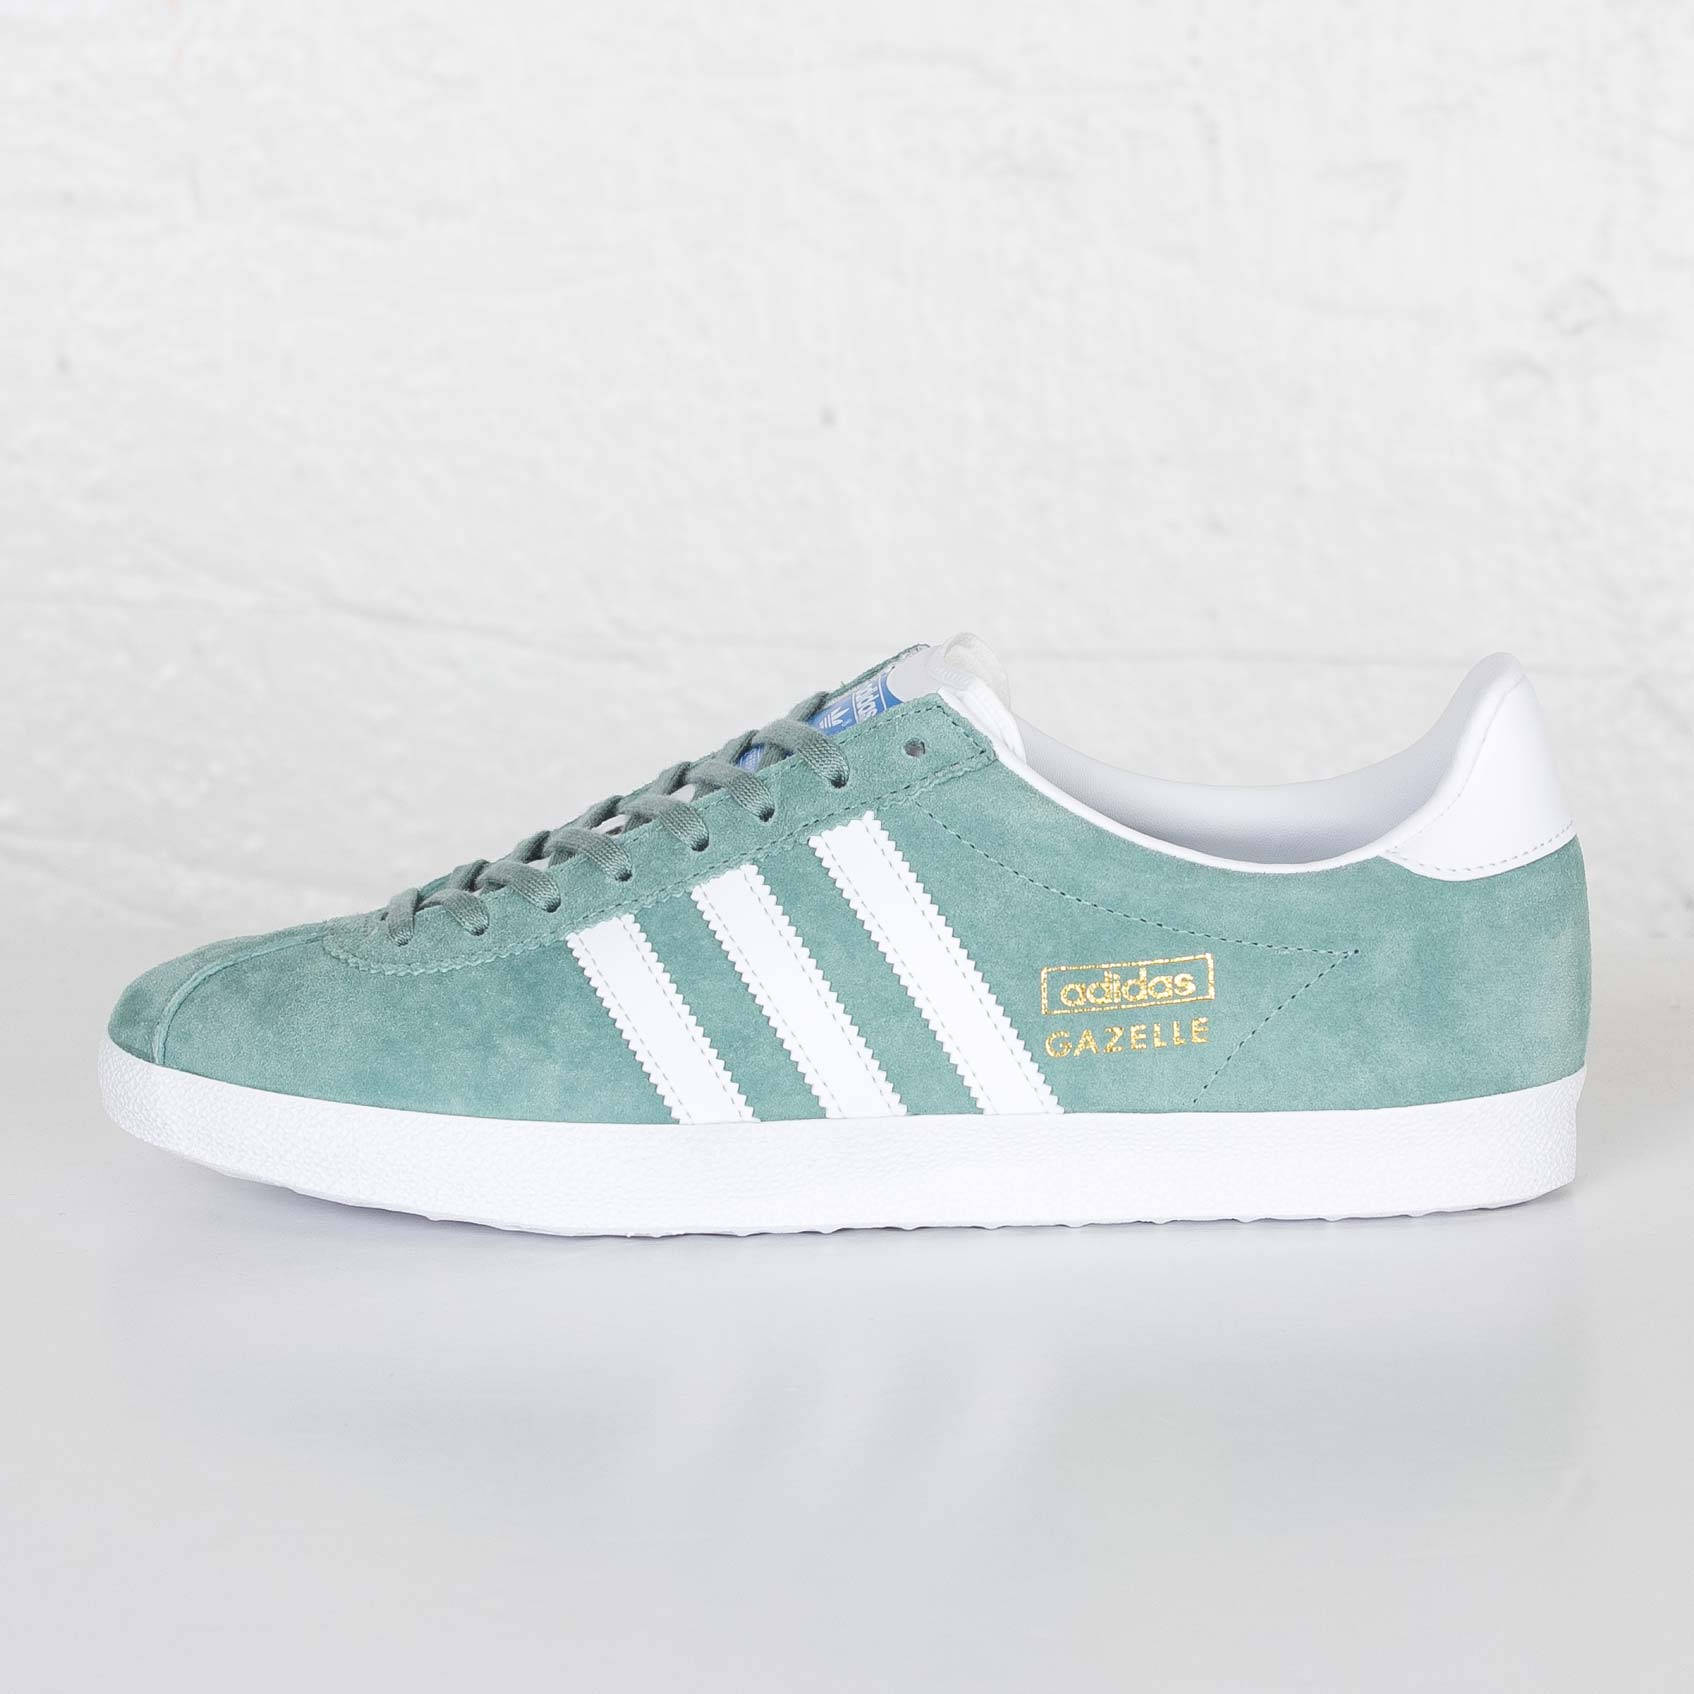 Adidas Originals Gazelle Trainers Green For Women Clearance